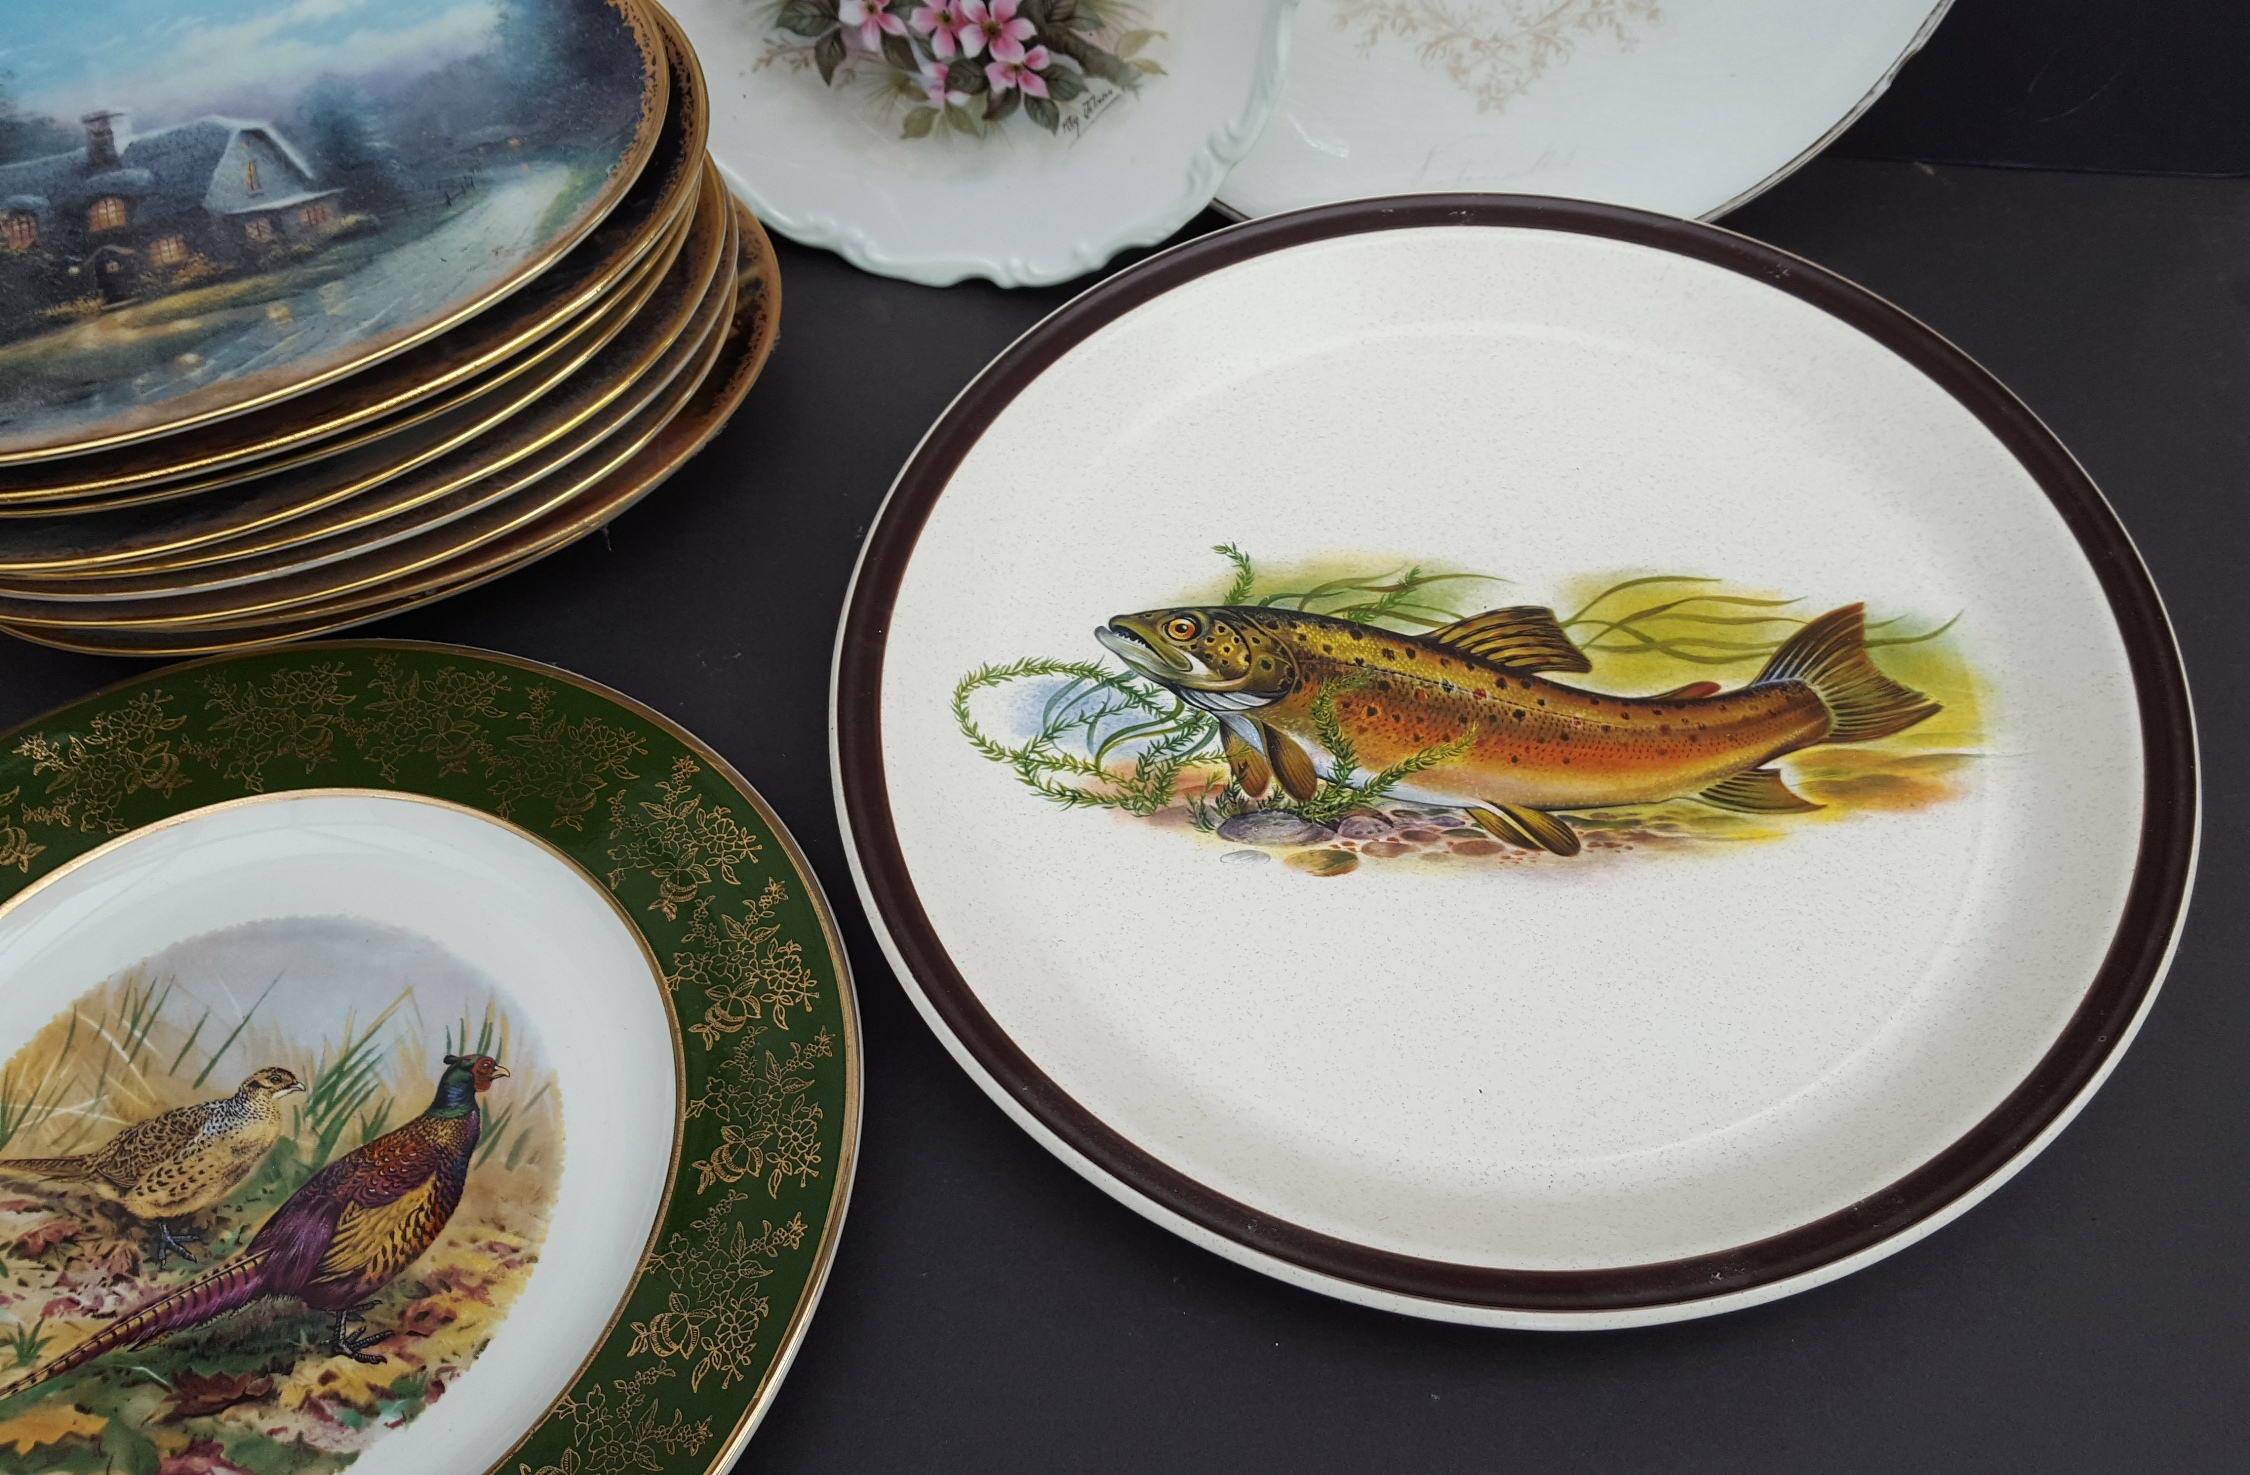 Vintage Collection 14 Collectable Plates Includes Victorian Spode Blue & White Birds & Fish - Image 4 of 5